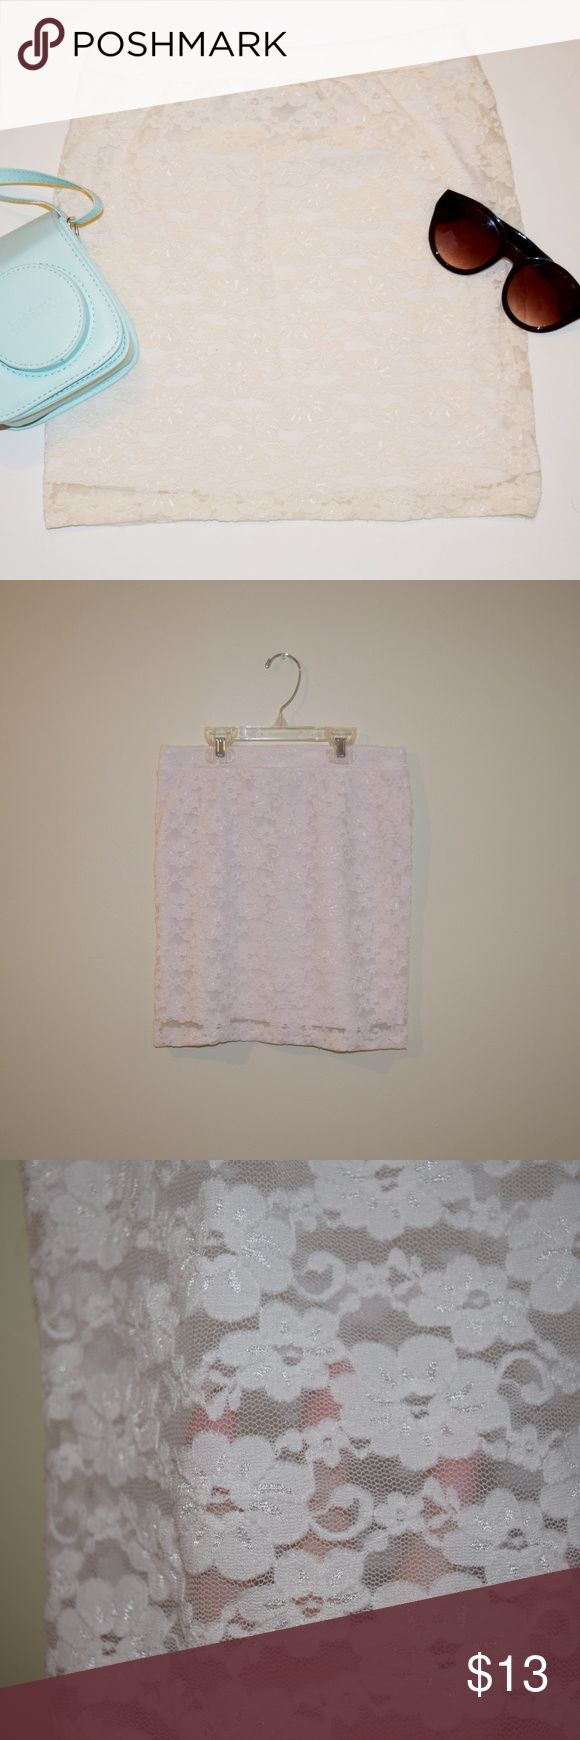 Forever 21 Mini Skirt NWOT White lace mini skirt: one lace layer and one thick white layer that fits to body. Stretchy material. NWOT!  **Extra items pictured in first photo are not included. Forever 21 Skirts Mini